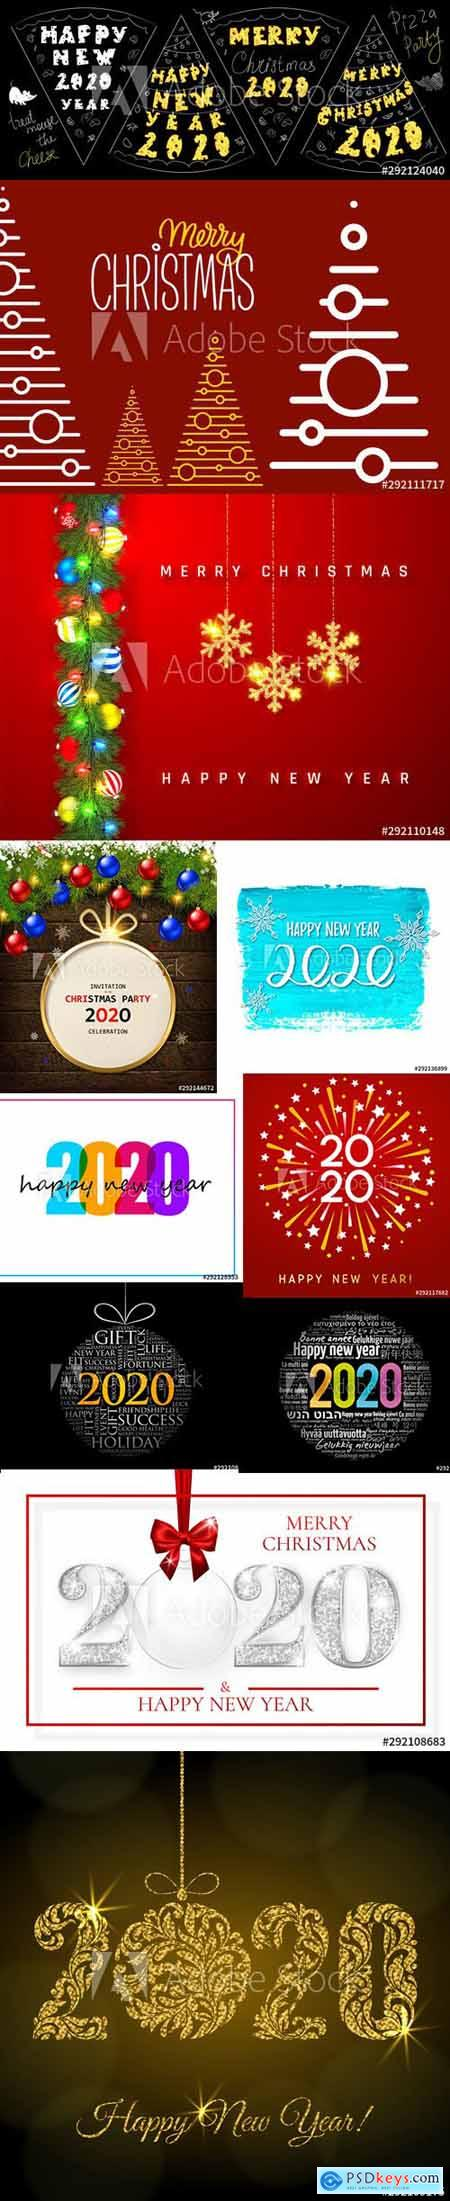 Merry Christmas and Happy New Year 2020 Illustrations Vector Set 6